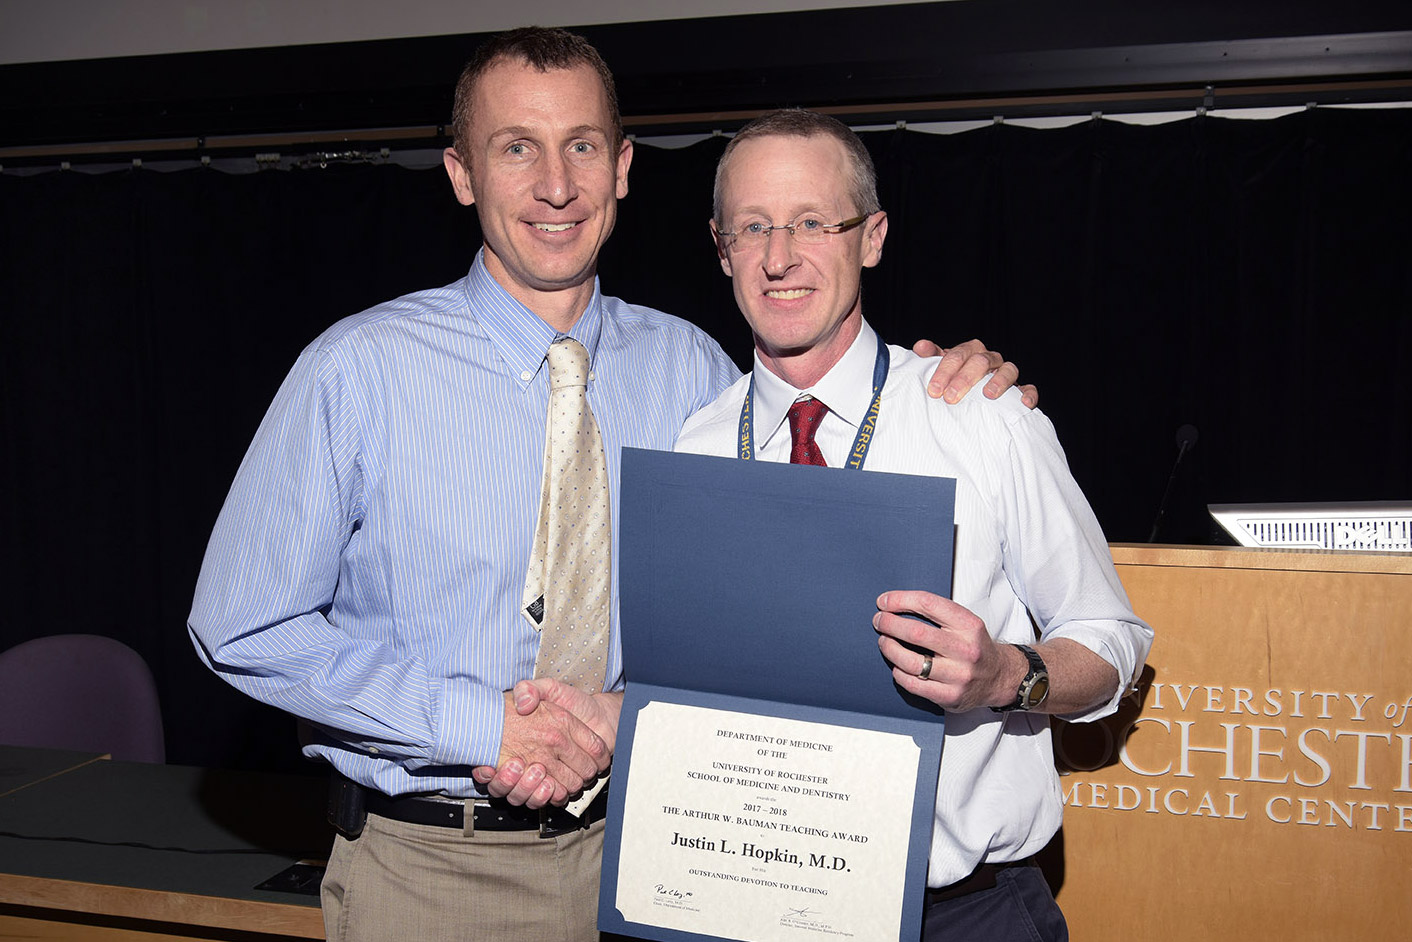 Justin Hopkin, MD and Alec O'Connor, MD, MPH